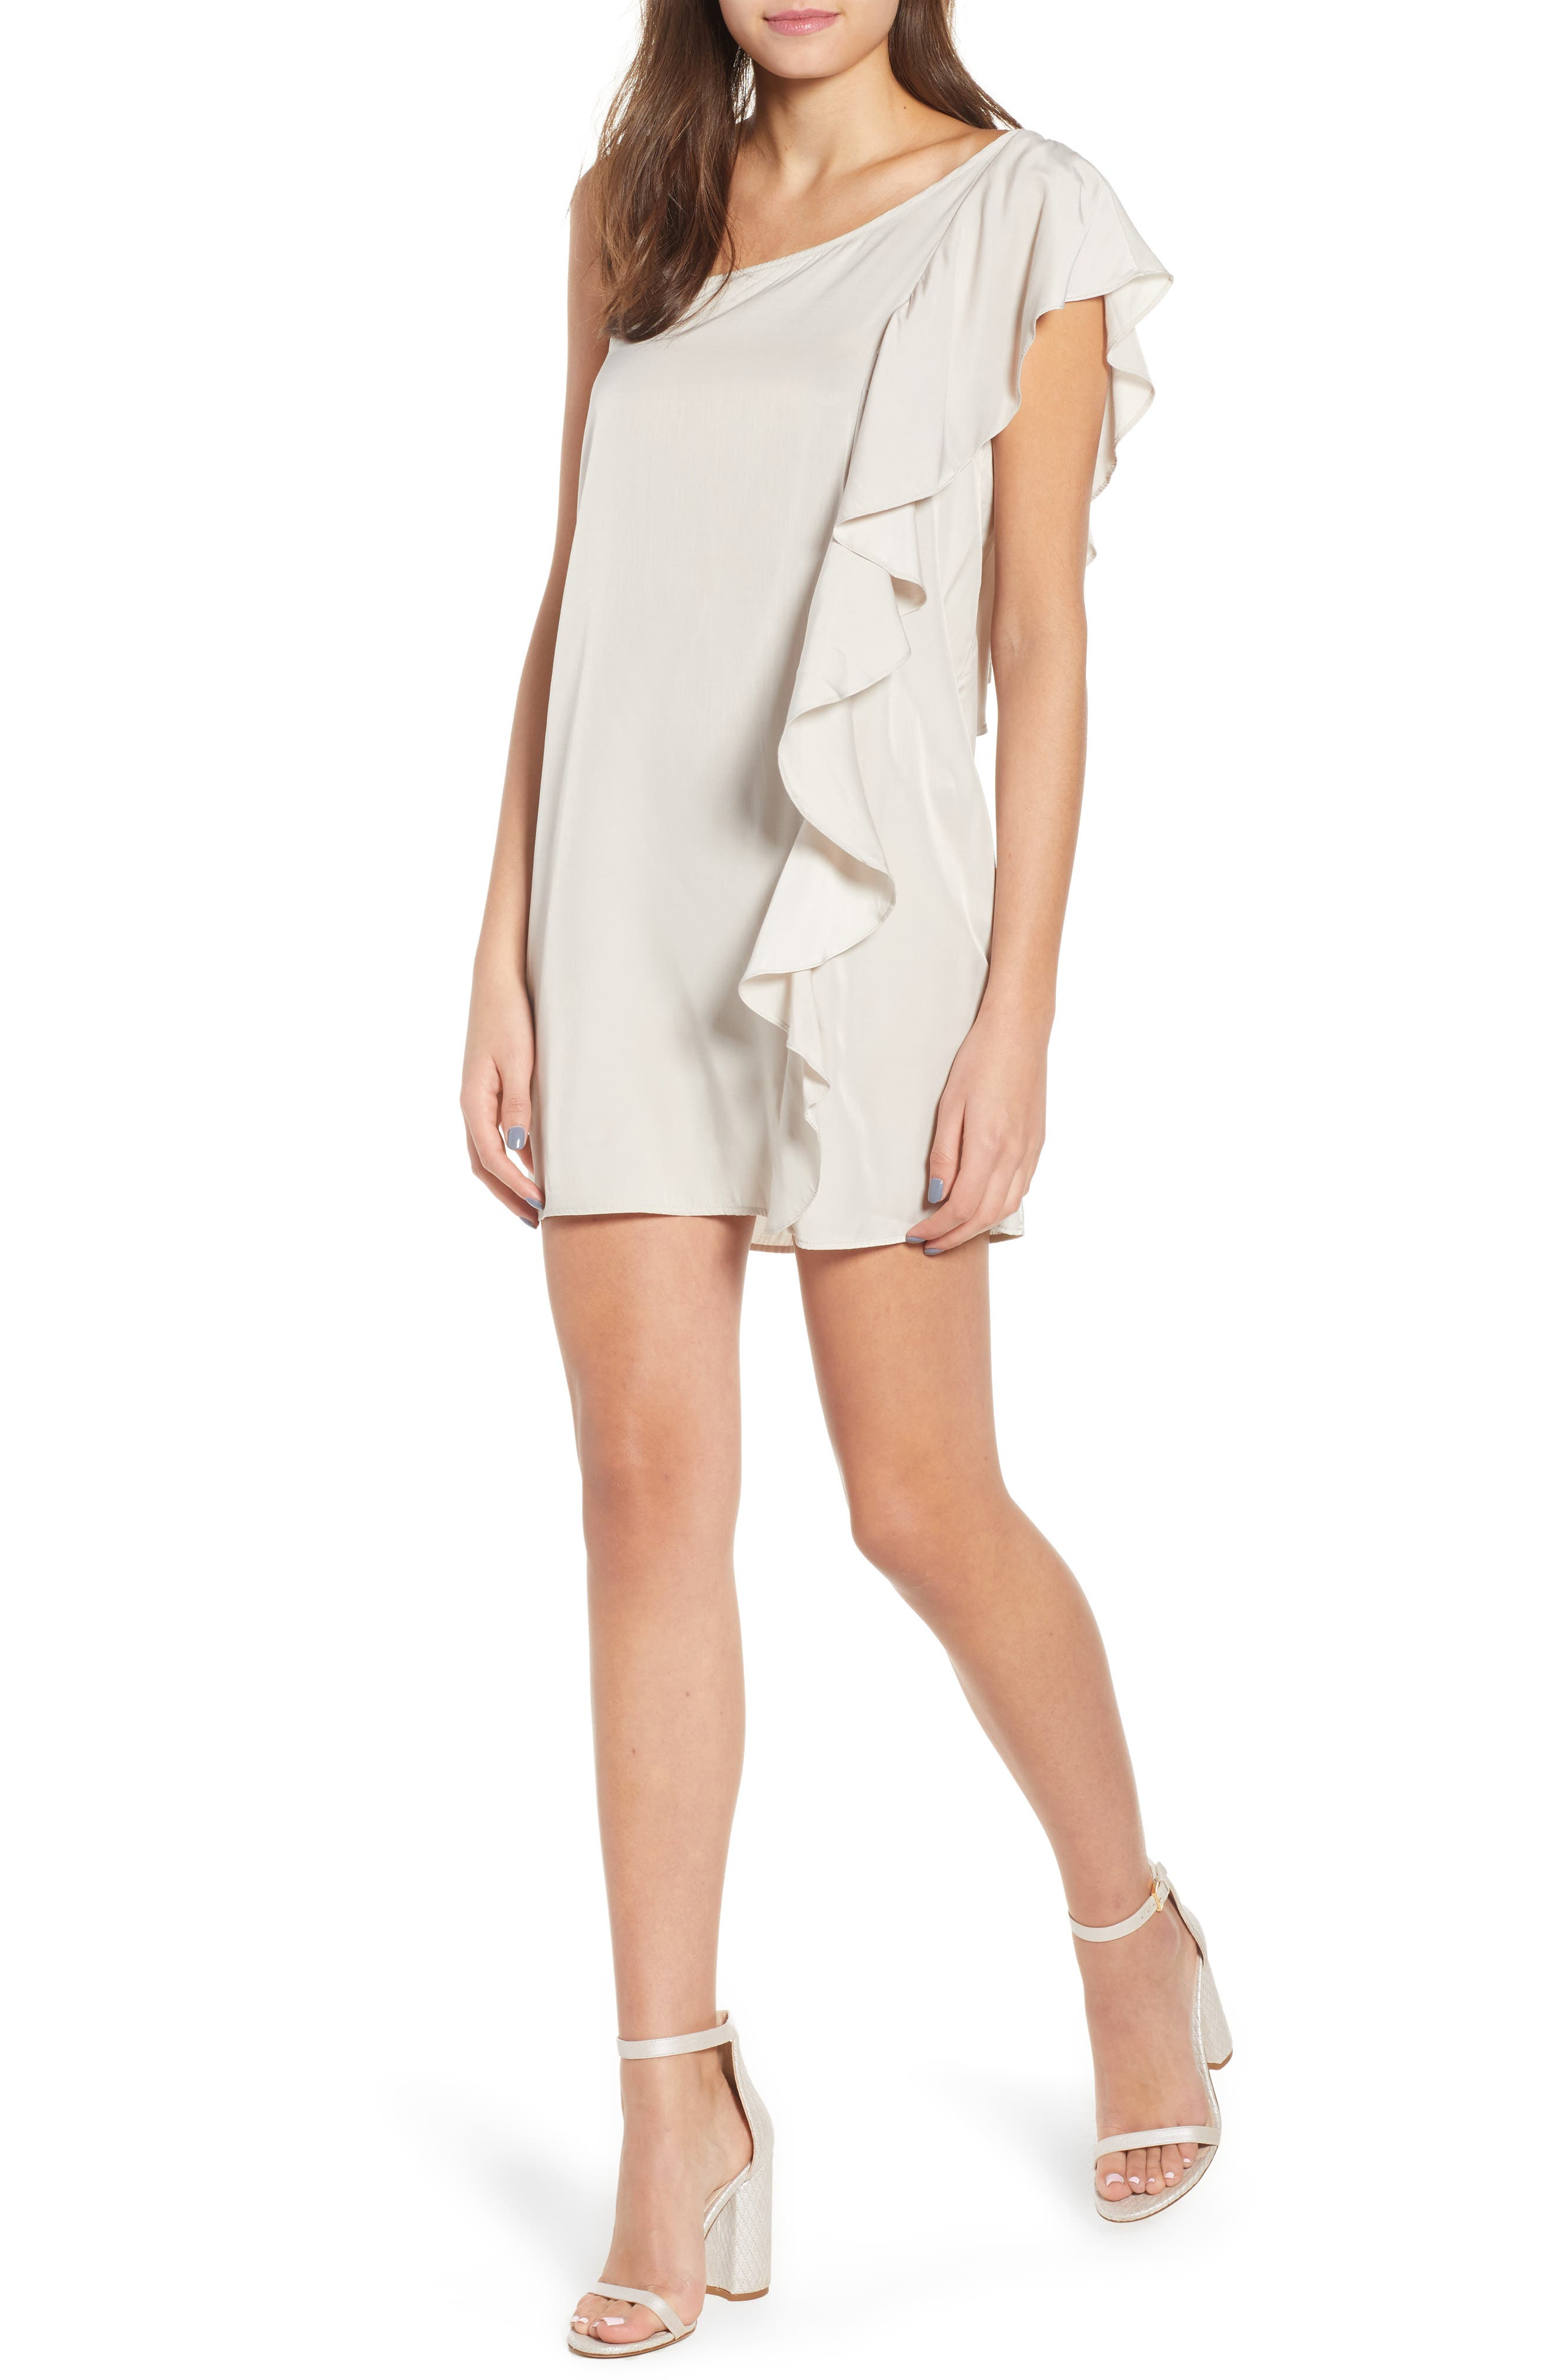 Hangin Ruff One Shoulder Dress,                             Main thumbnail 1, color,                             Light Grey